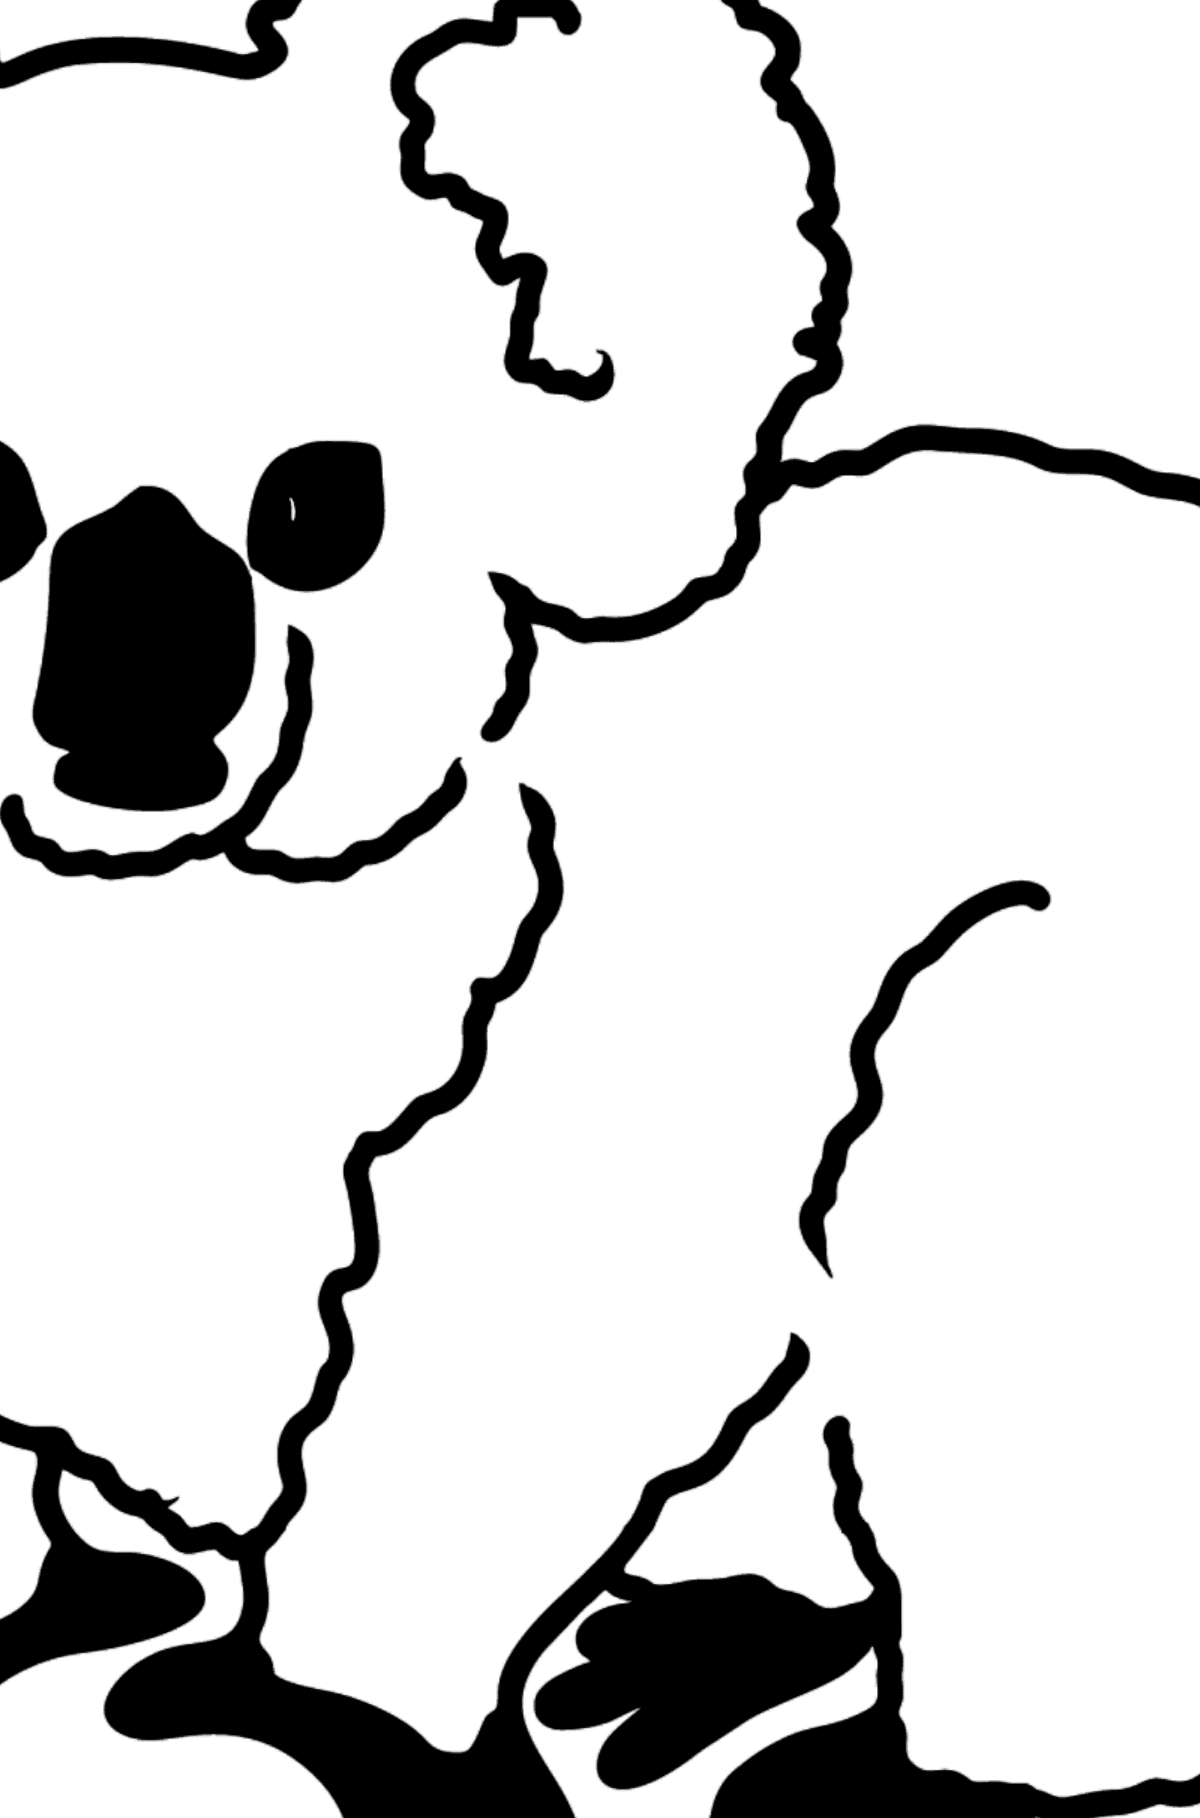 Koala coloring page - Coloring by Geometric Shapes for Kids